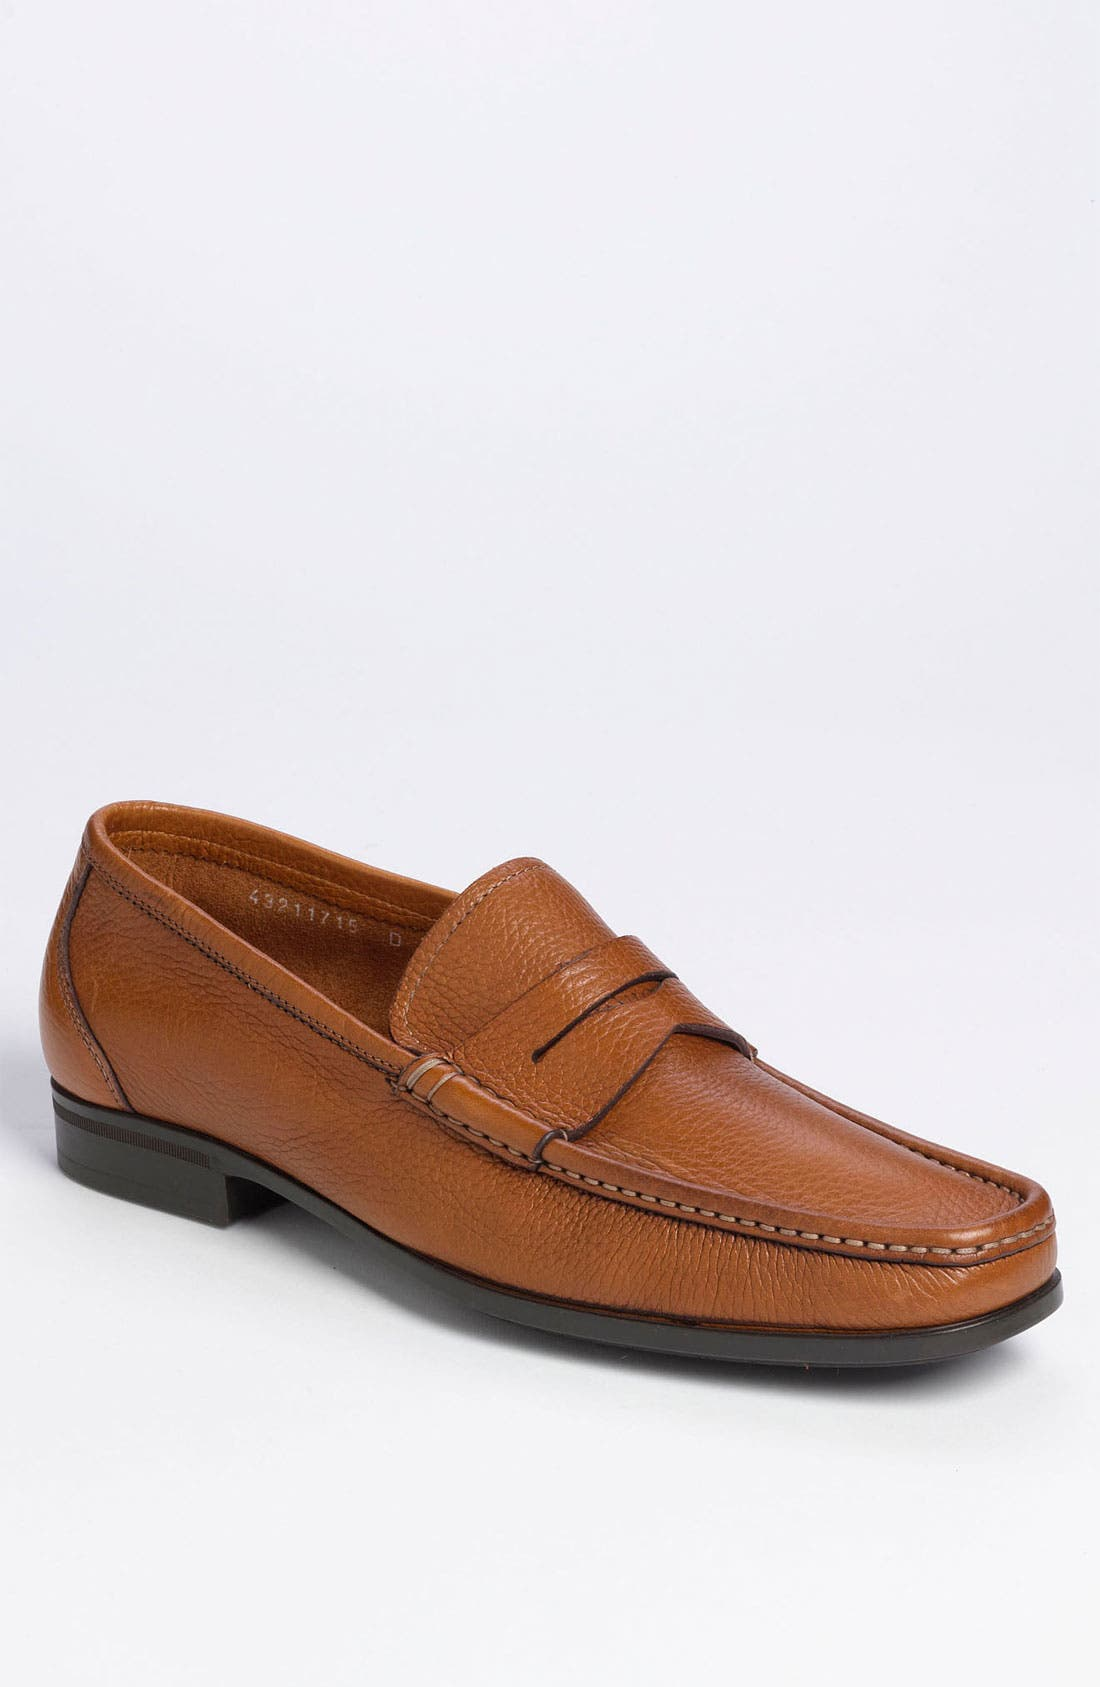 Alternate Image 1 Selected - Santoni 'Tucker' Penny Loafer